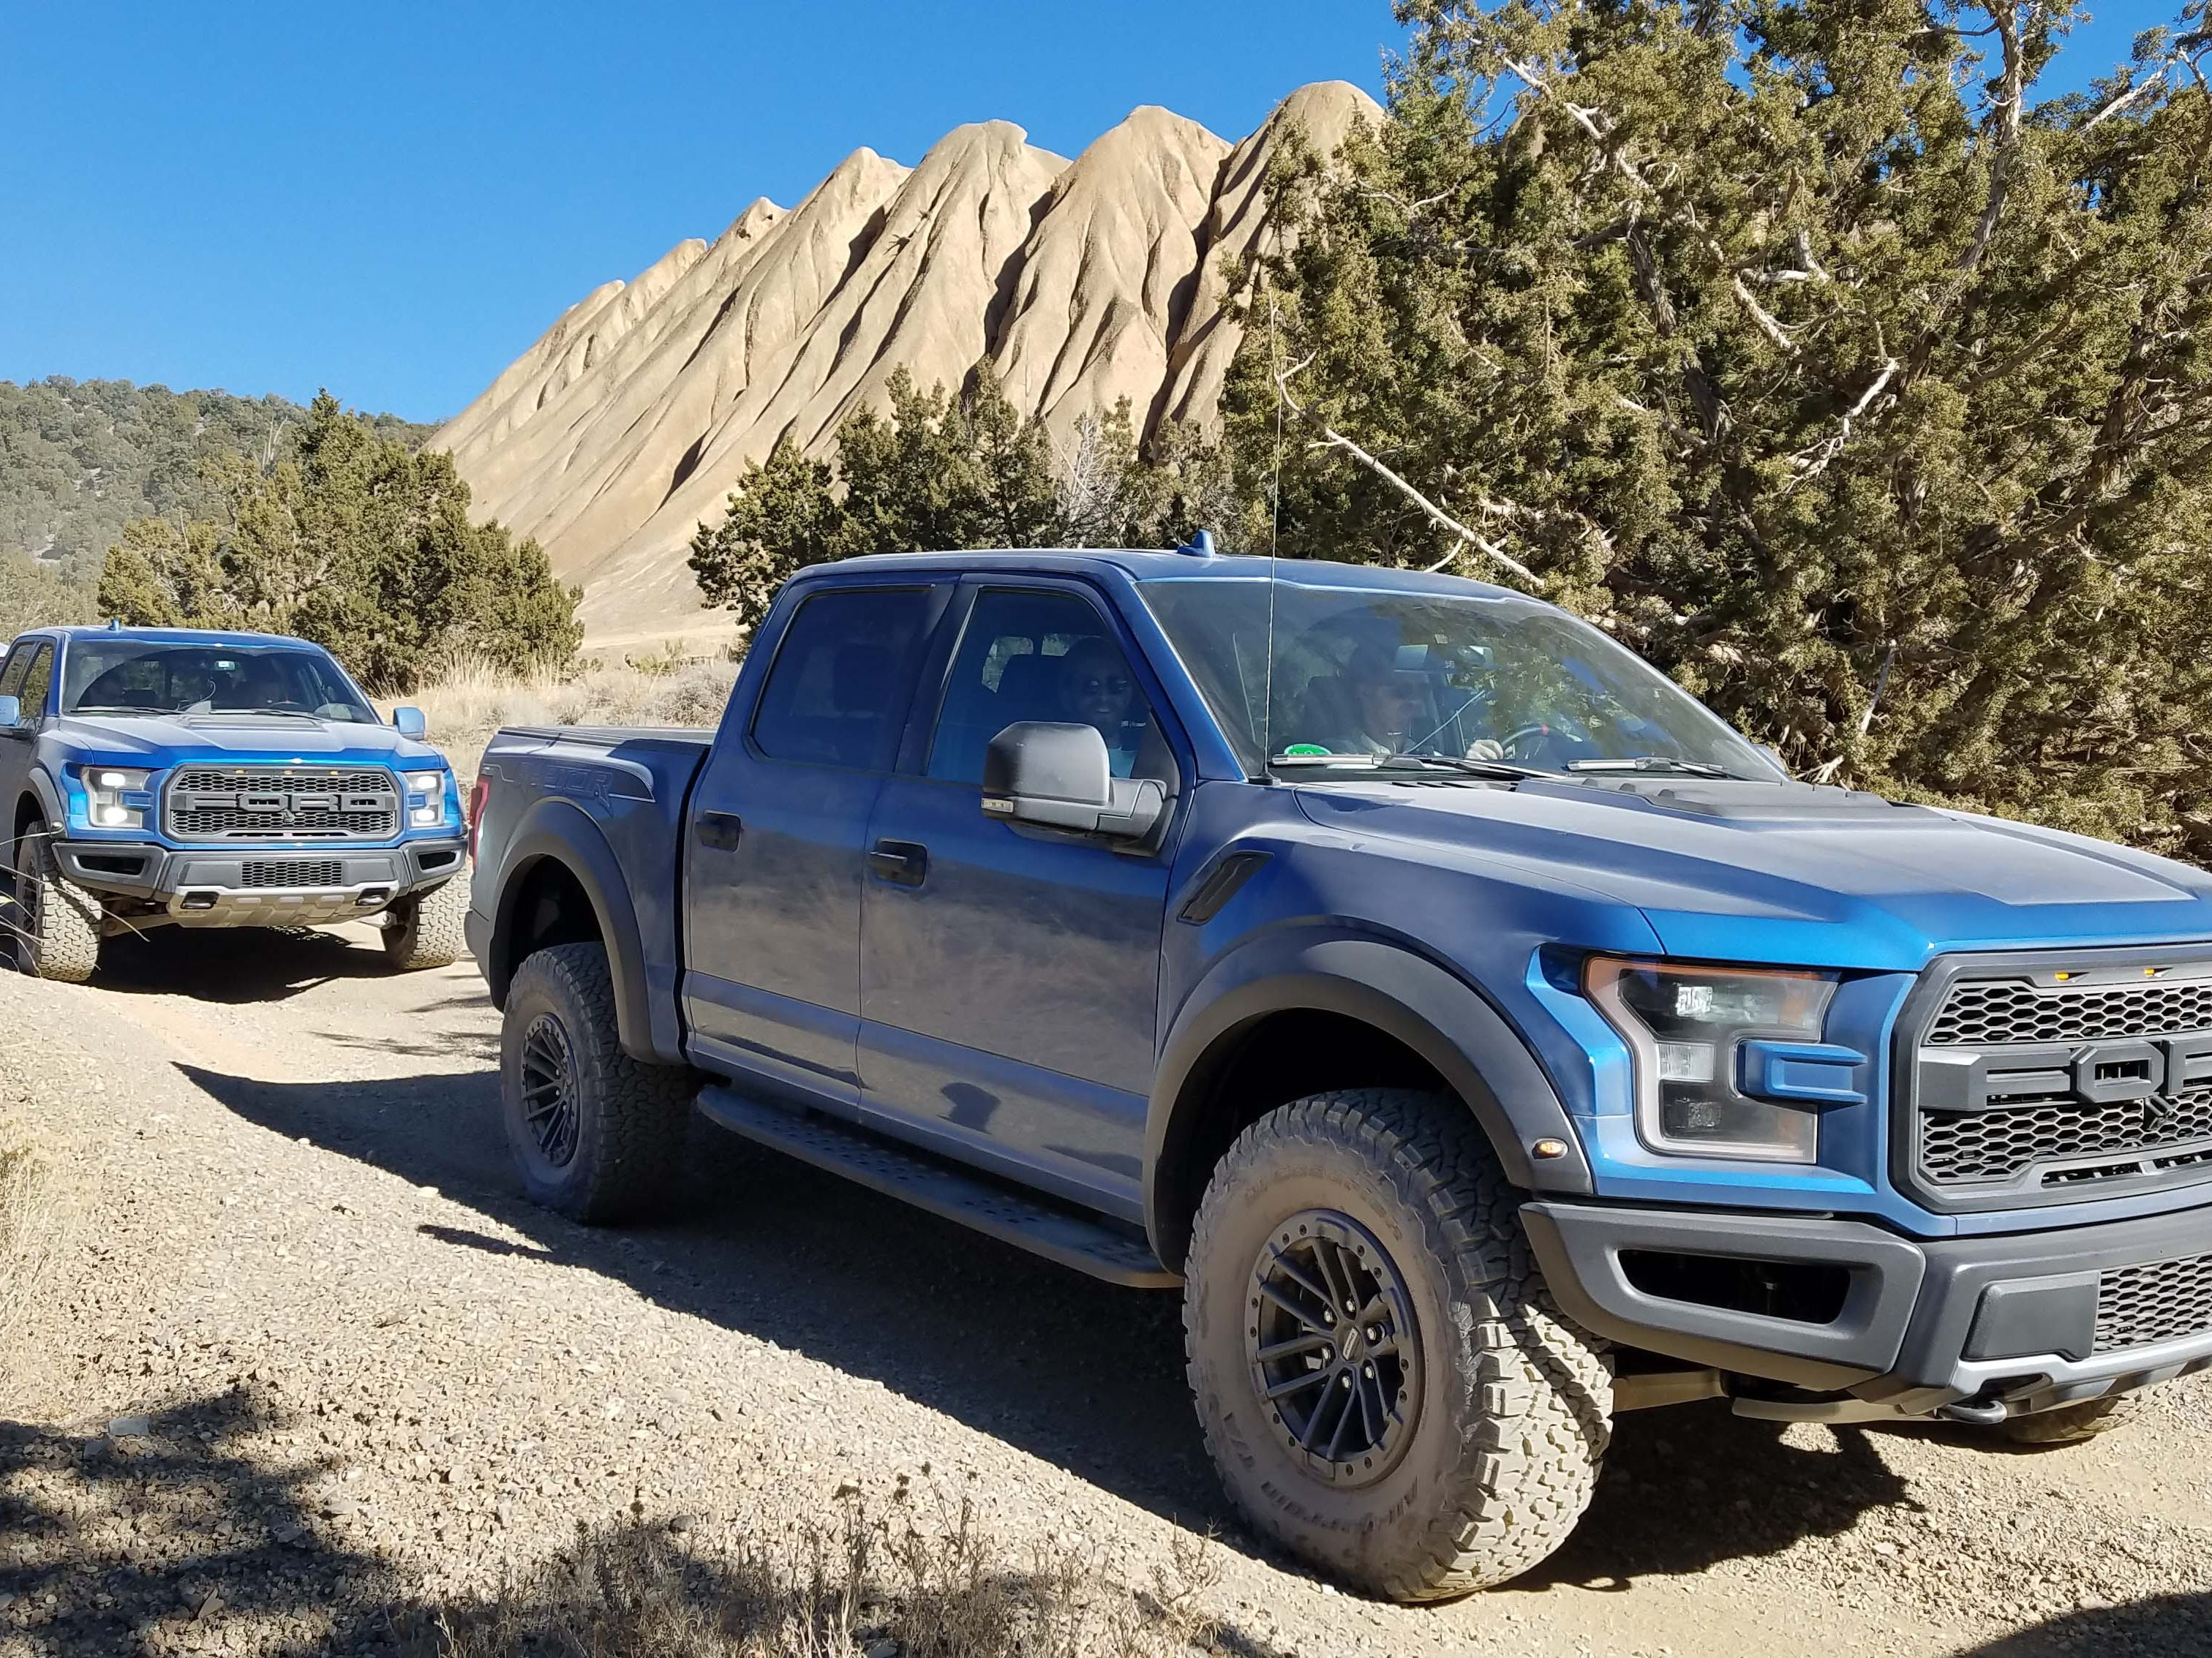 The 2019 Ford F-150 Raptor starts at about $54,000 and can be loaded with features to around $74,000.